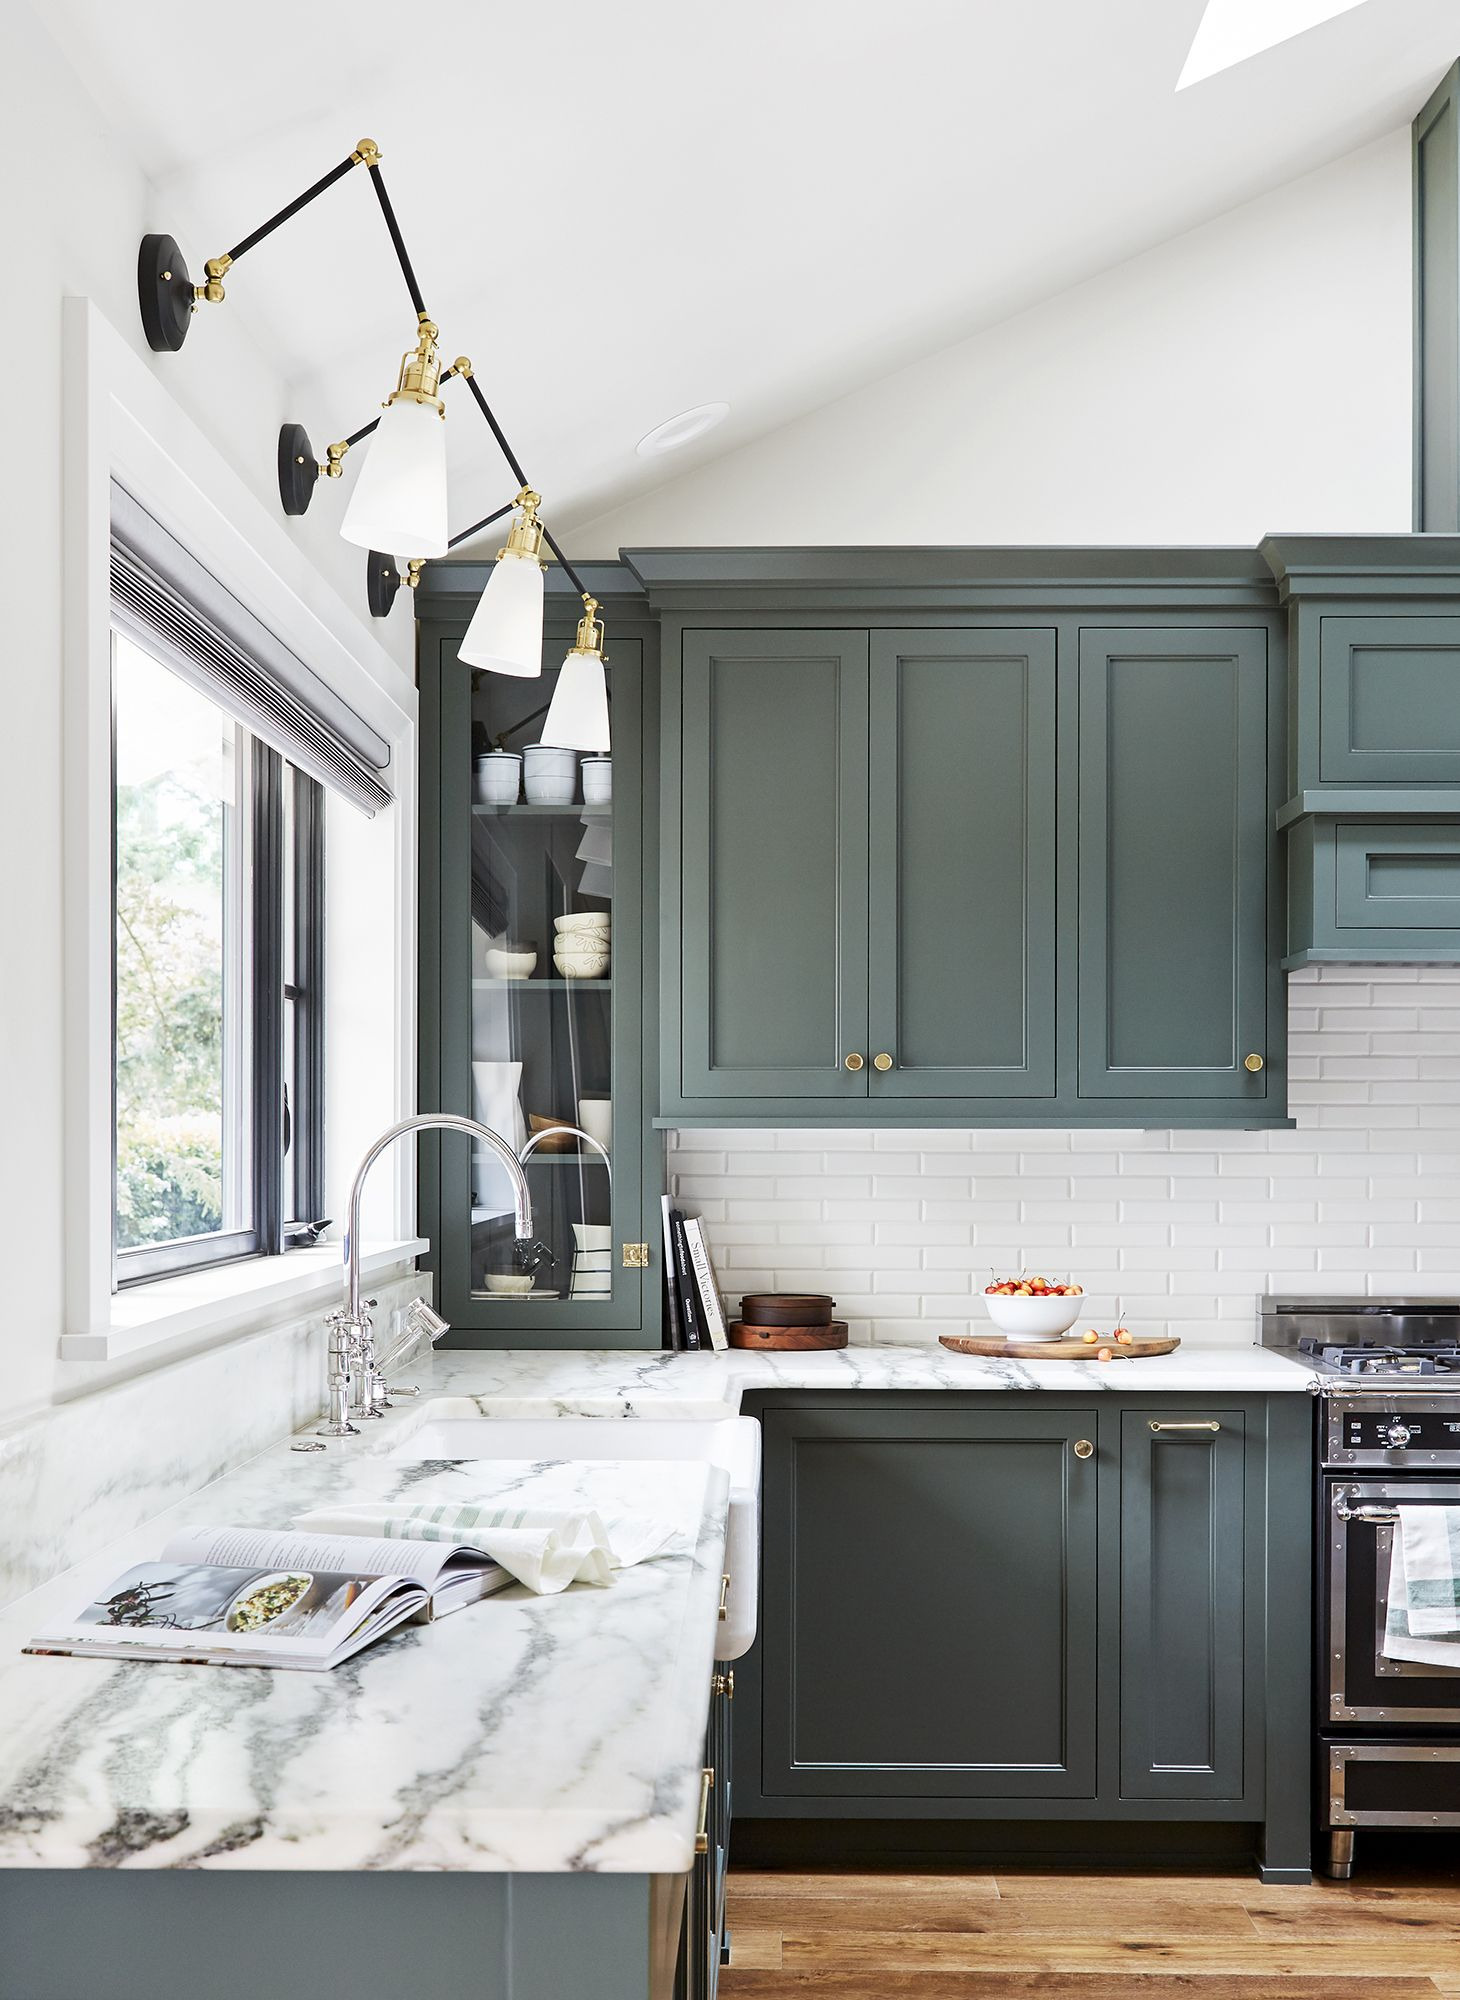 Painting Kitchen Cabinet Doors Luxury How to Paint Your Kitchen Cabinets Best Tips for Painting